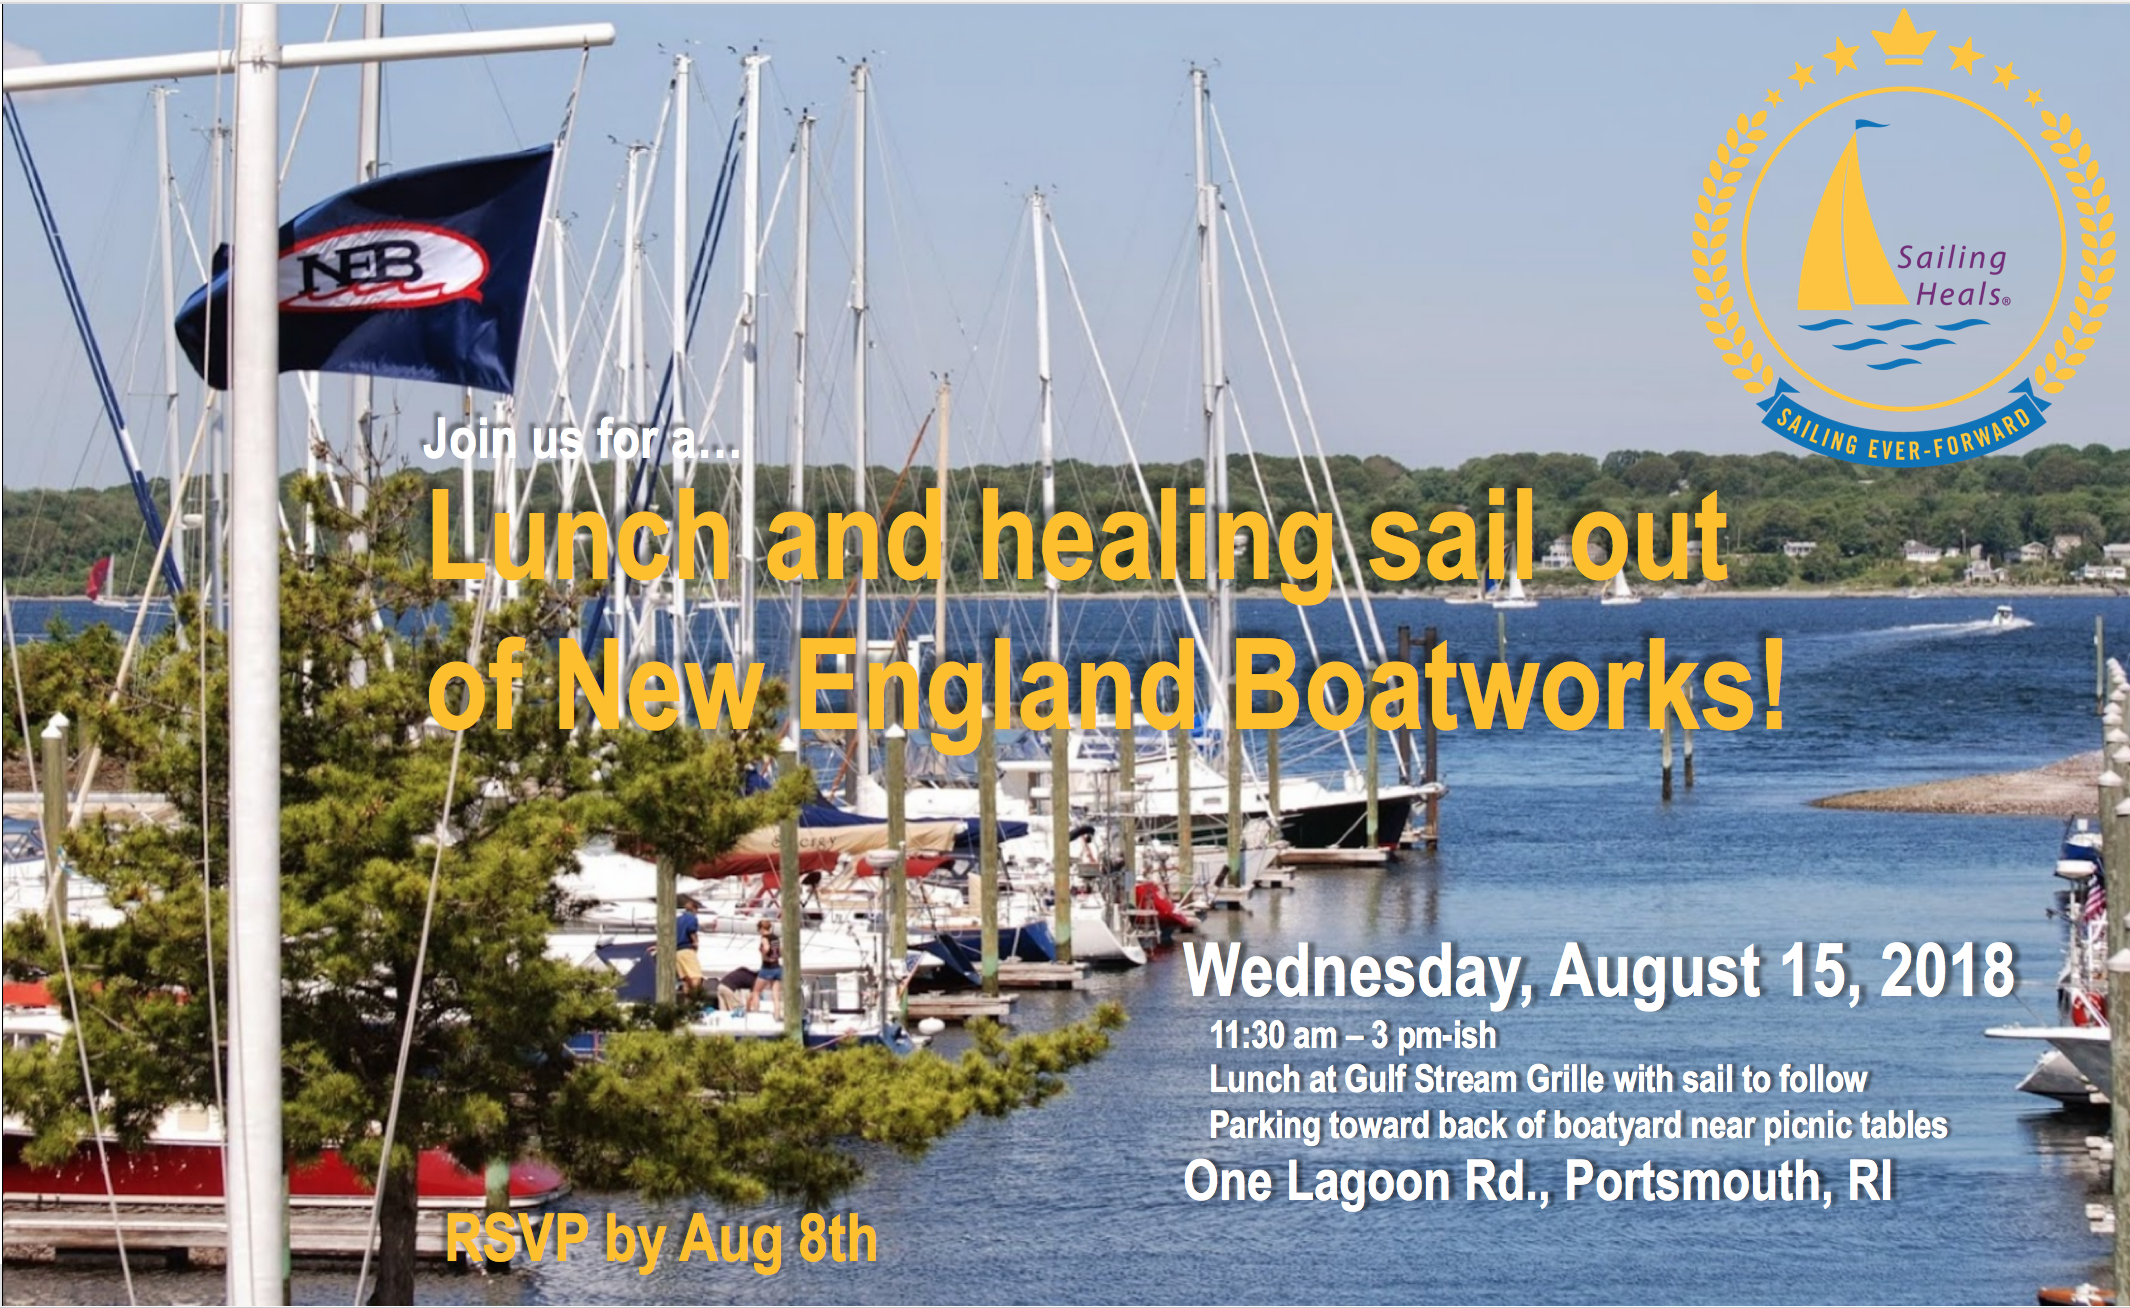 8/15/18 New England Boatworks Lunch and healing sail